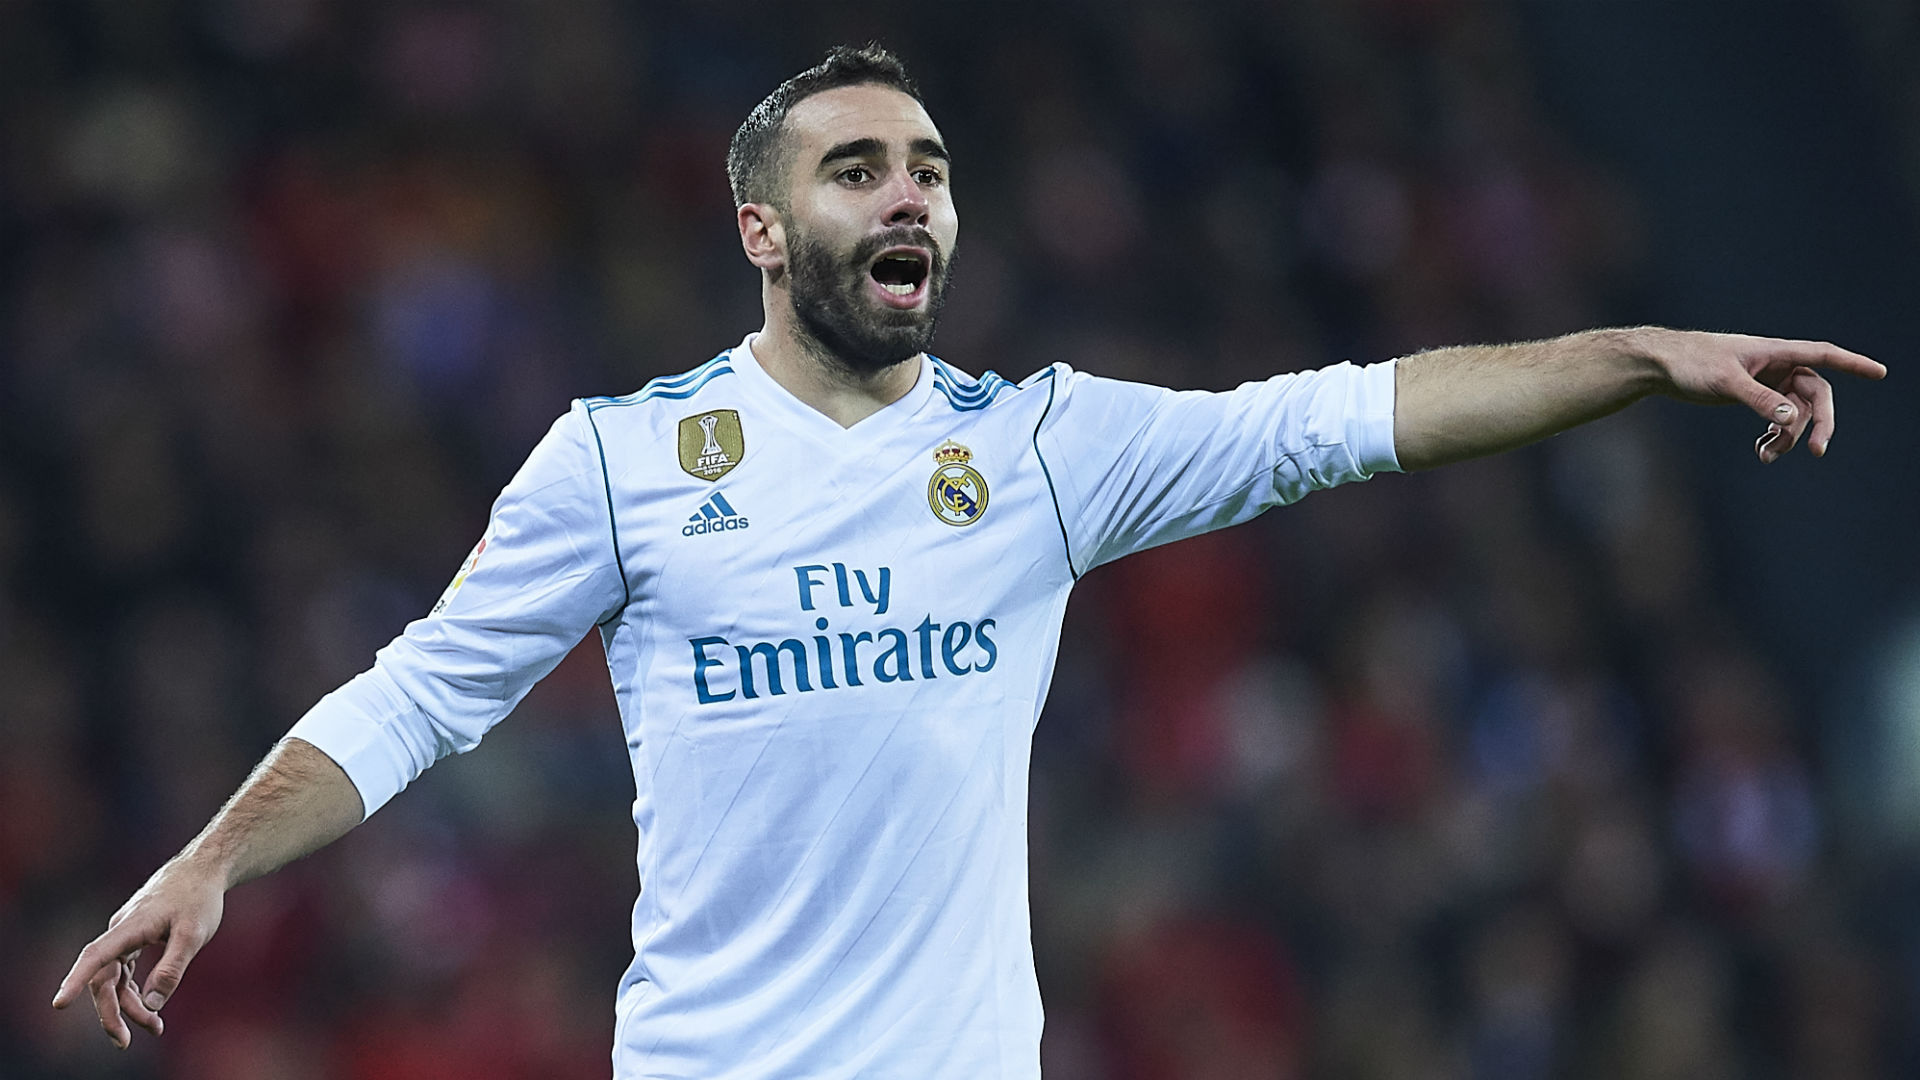 Real Madrid's Dani Carvajal banned for seeking deliberate yellow card